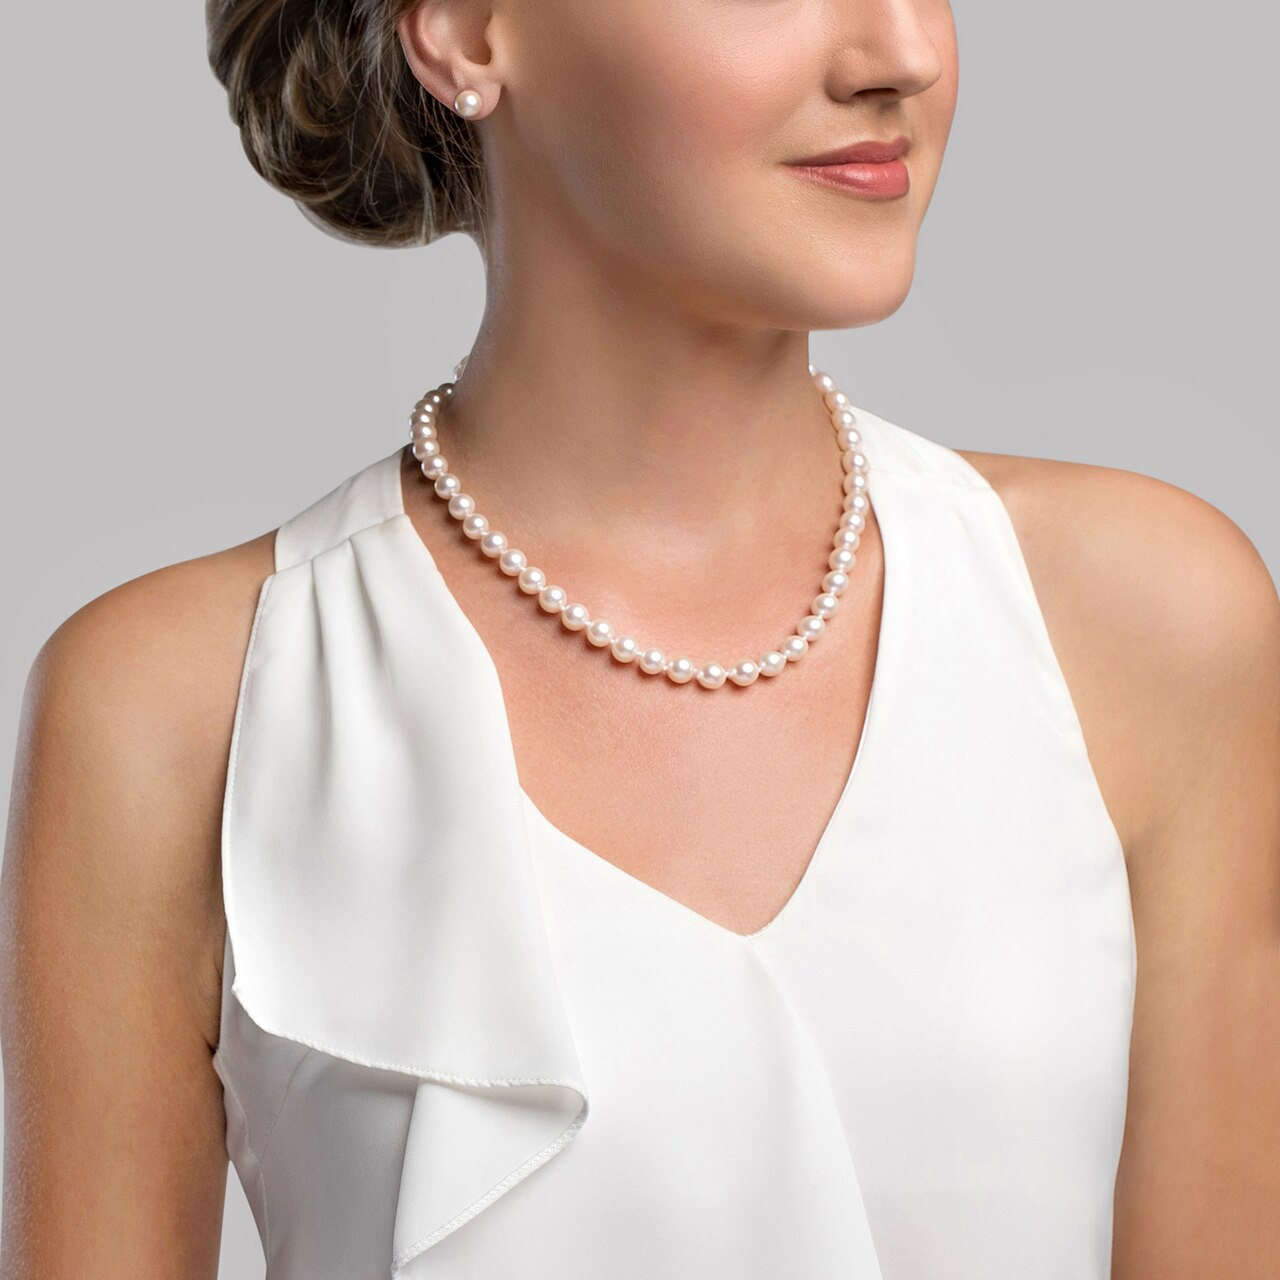 This elegant necklace features 8.5-9.0mm Japanese Akoya pearls, handpicked for their luminous luster